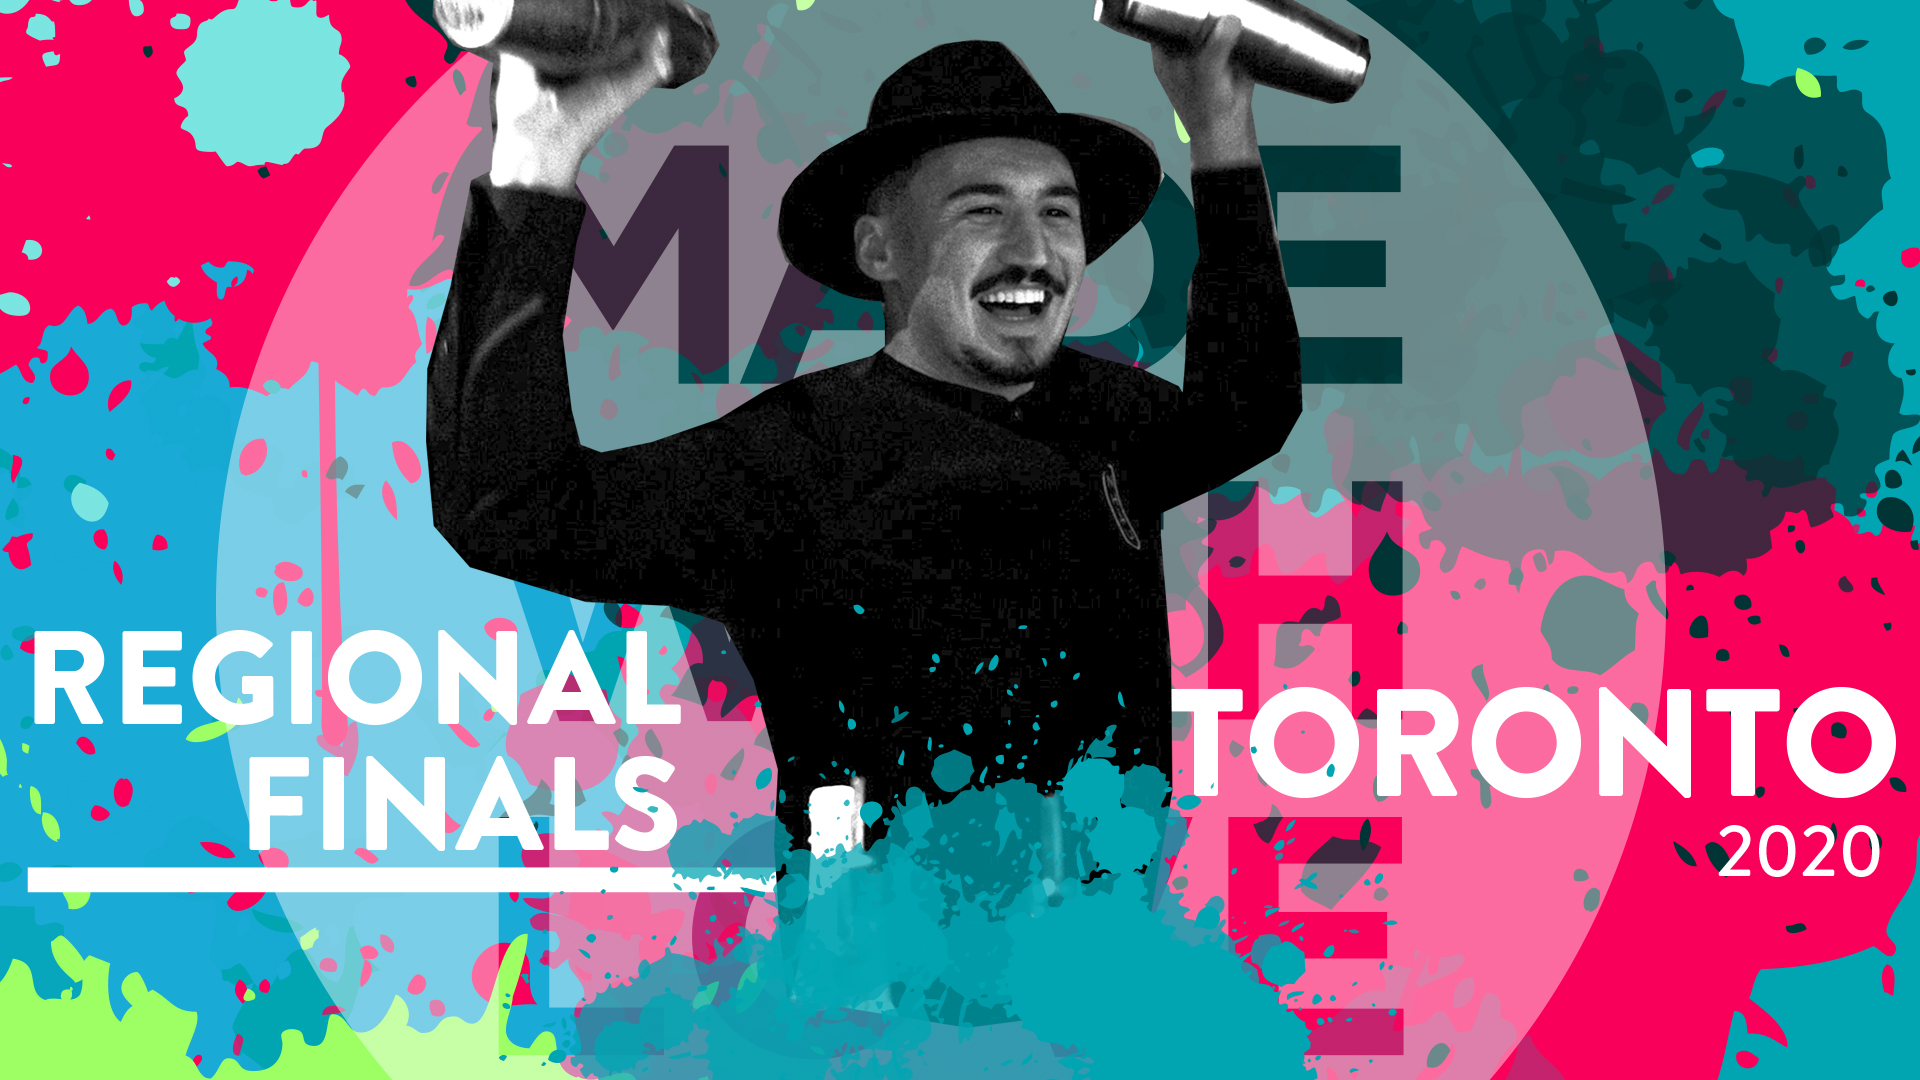 fb-event-cover-final-toronto